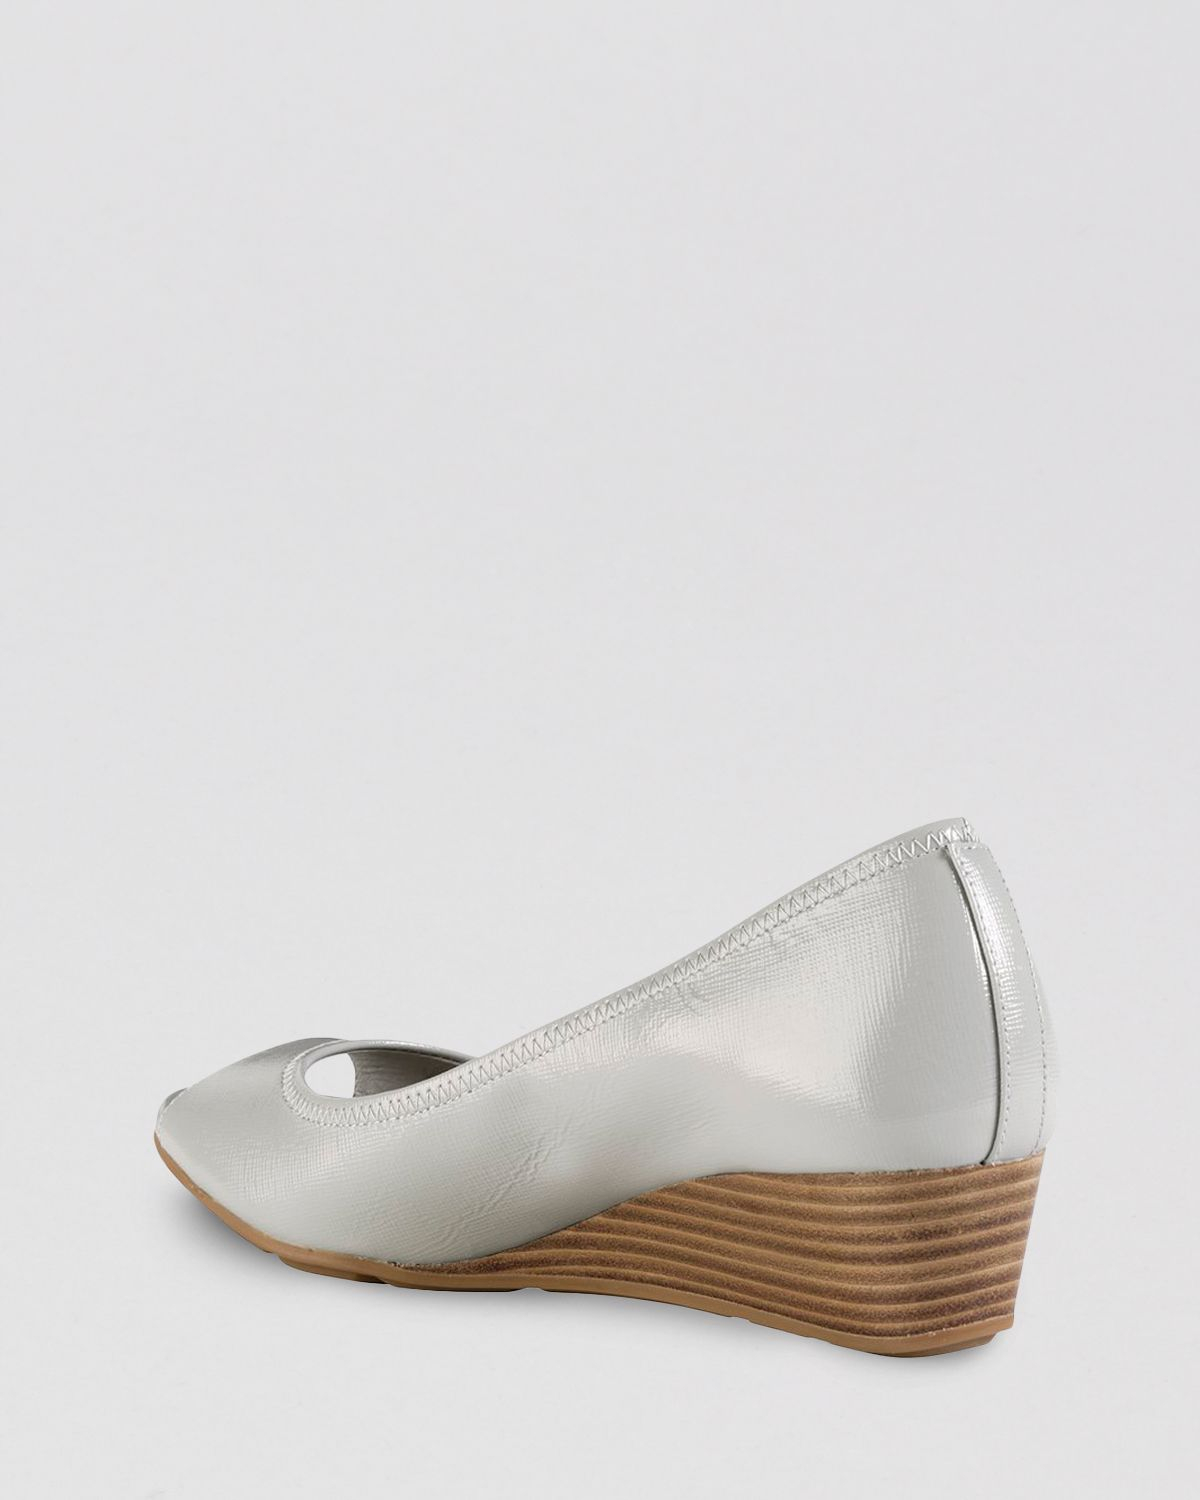 7dd9c665bbd2 Lyst - Cole Haan Peep Toe Wedge Pumps - Air Tali in Gray